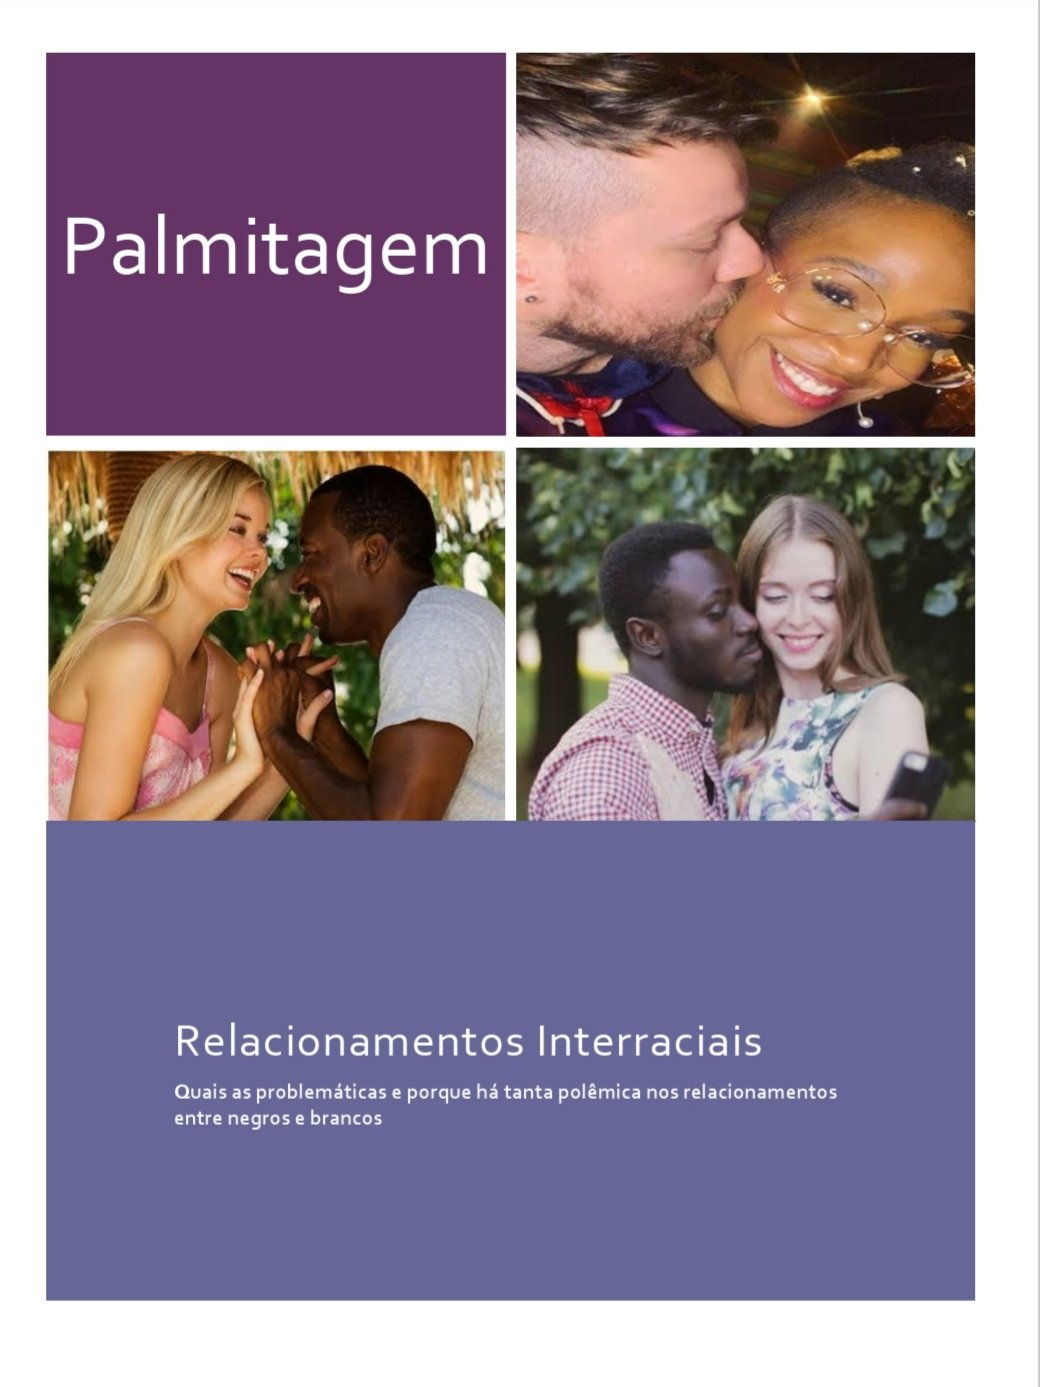 Palmitagem Interracial Relationships: Eugenics and militancy in Brazil